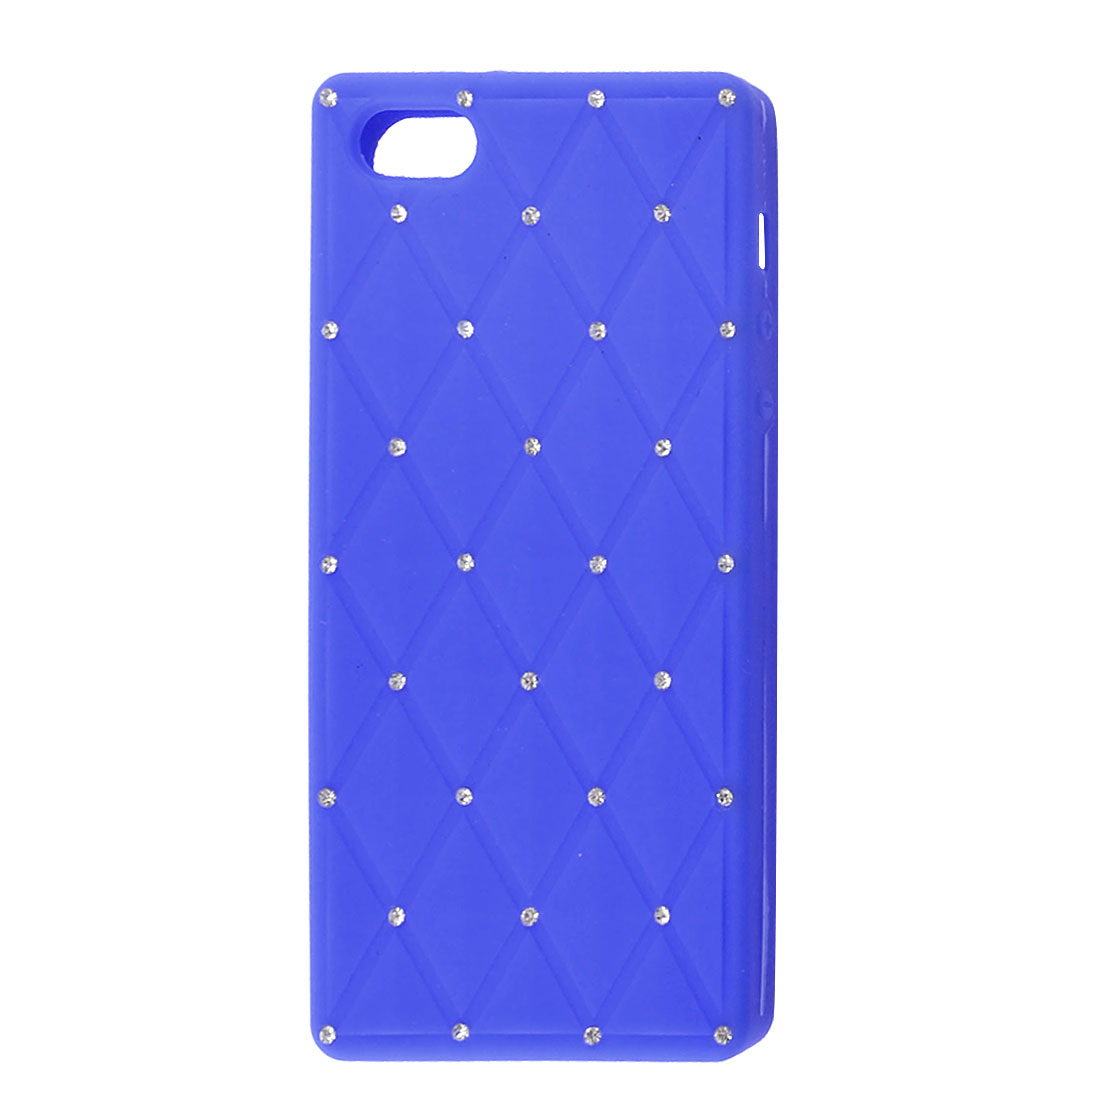 Royal Blue Soft Silicone Faux Rhinestone Decor Shield Cover Case for iPhone 5 5G